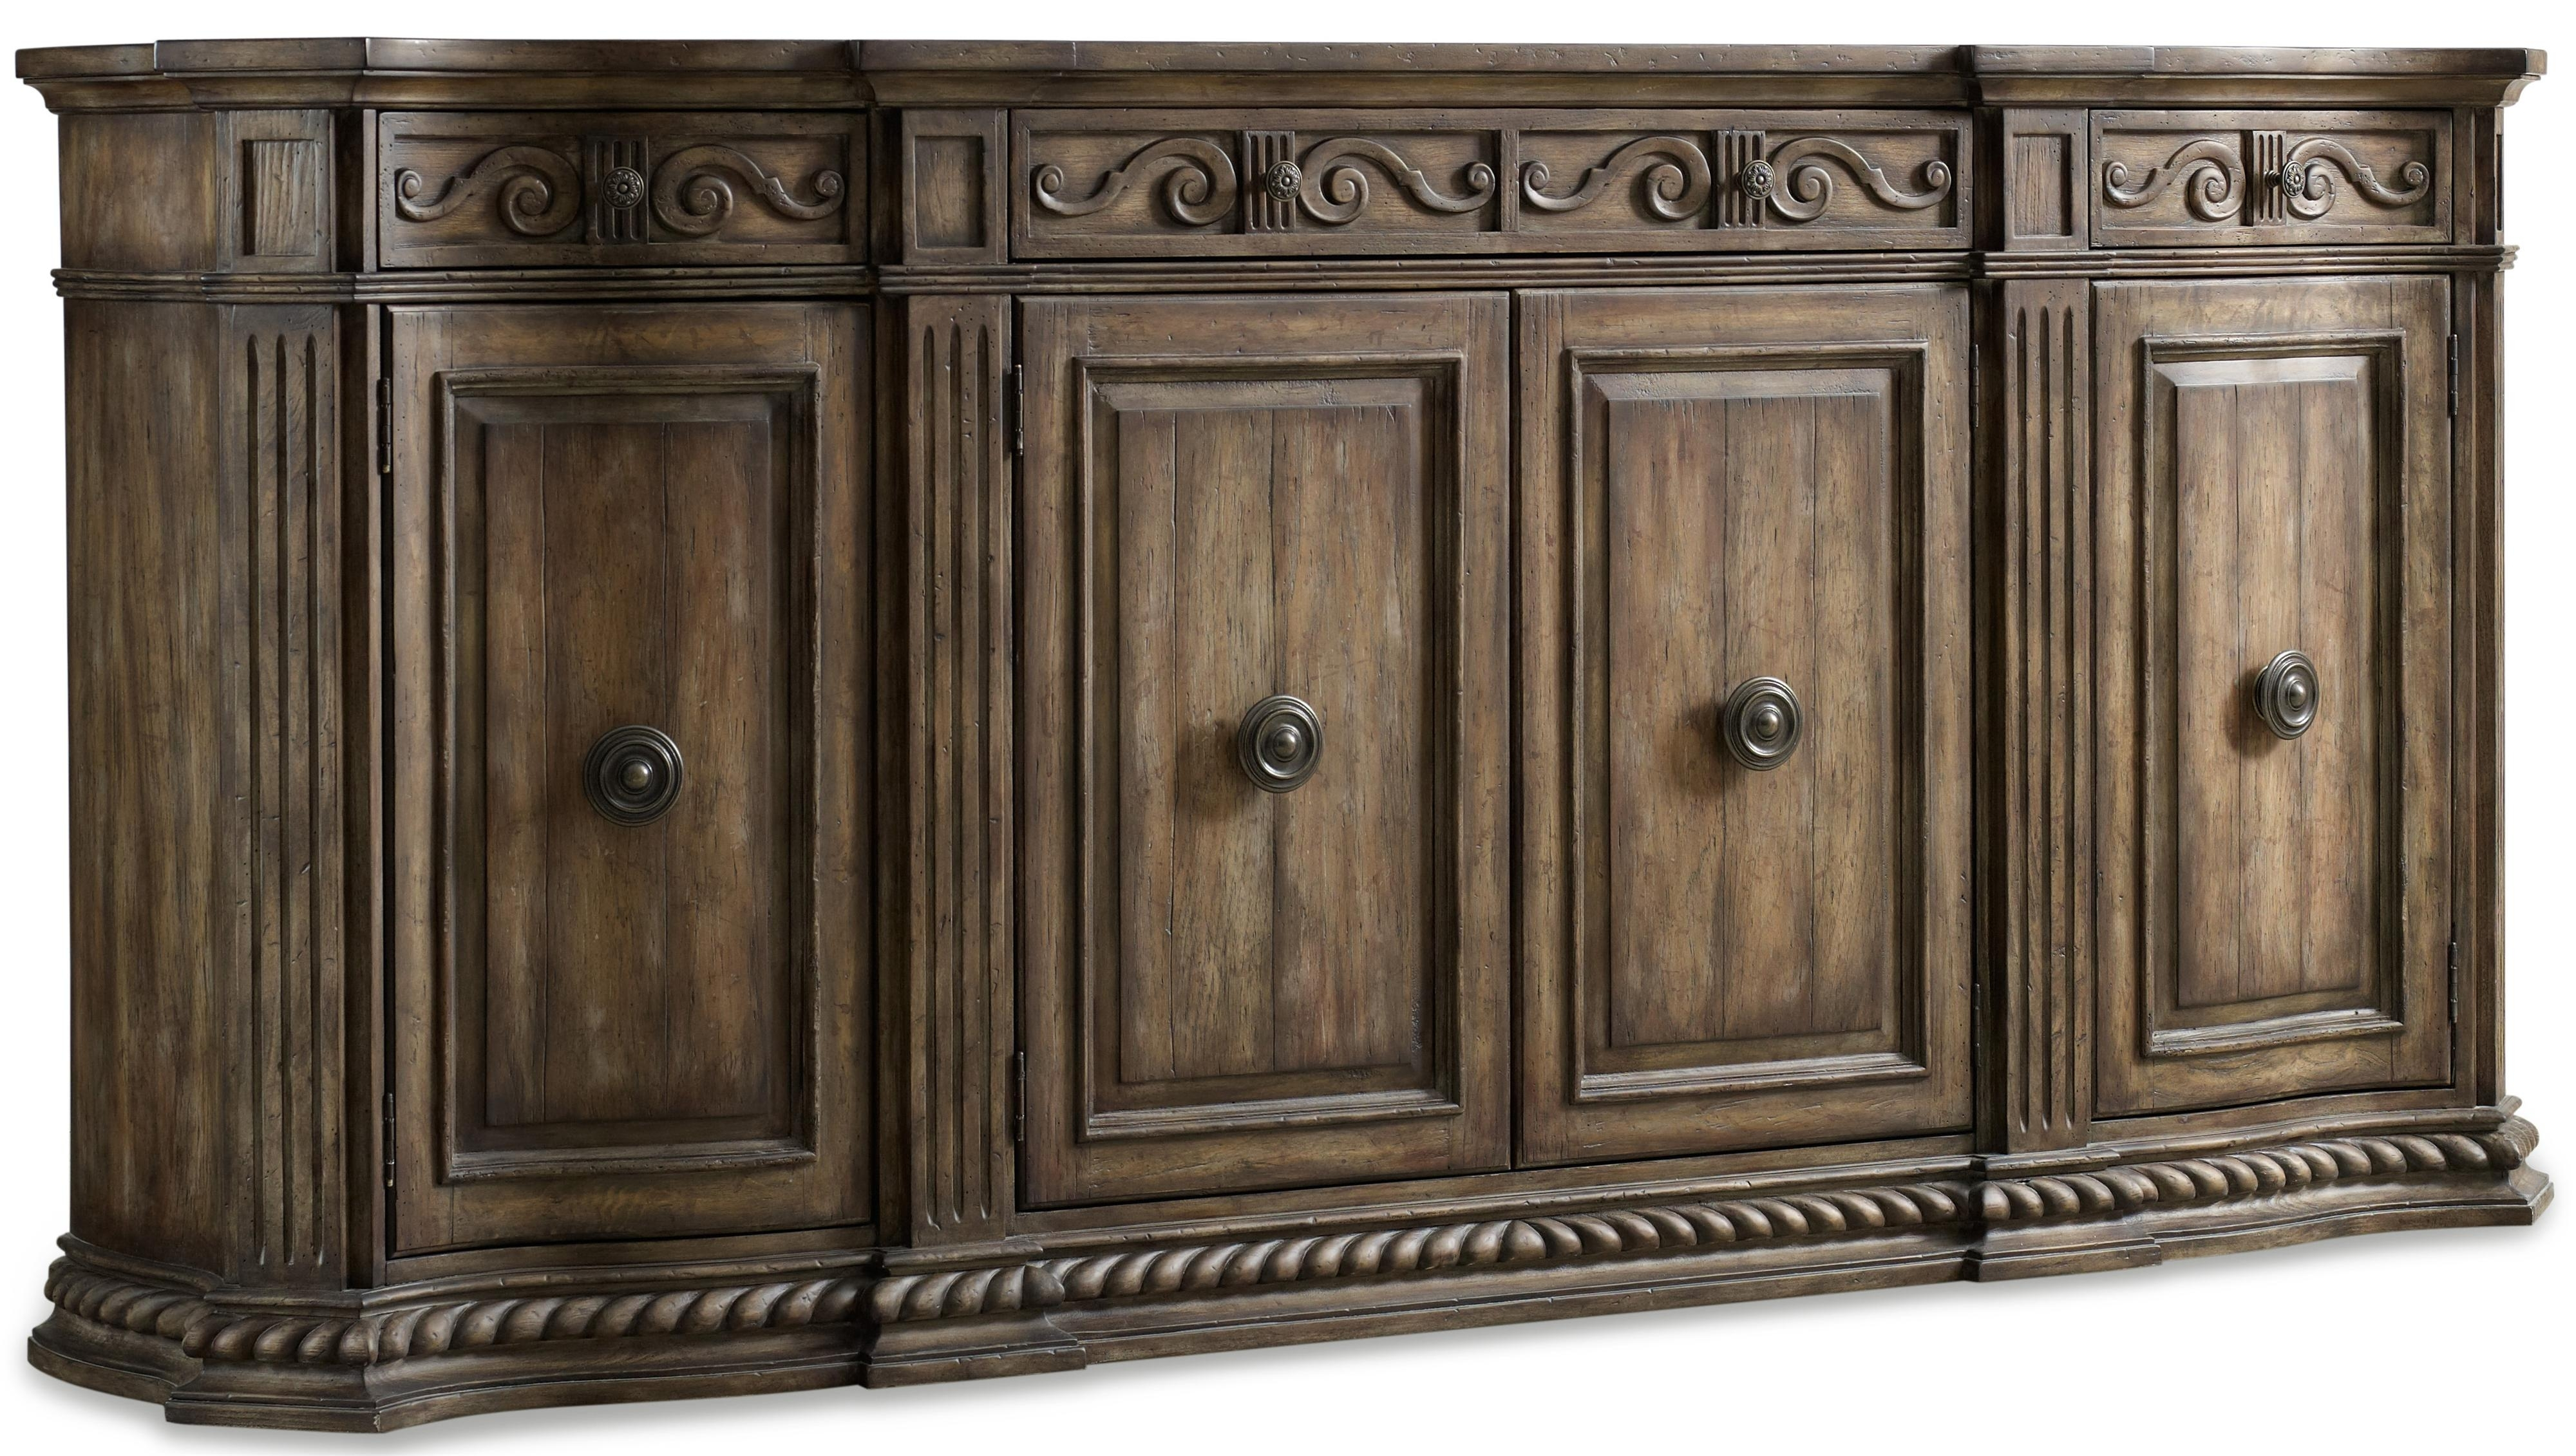 Hooker Furniture Rhapsody 5070-85002 96-Inch Credenza With Rope pertaining to Bale Rustic Grey Sideboards (Image 16 of 30)